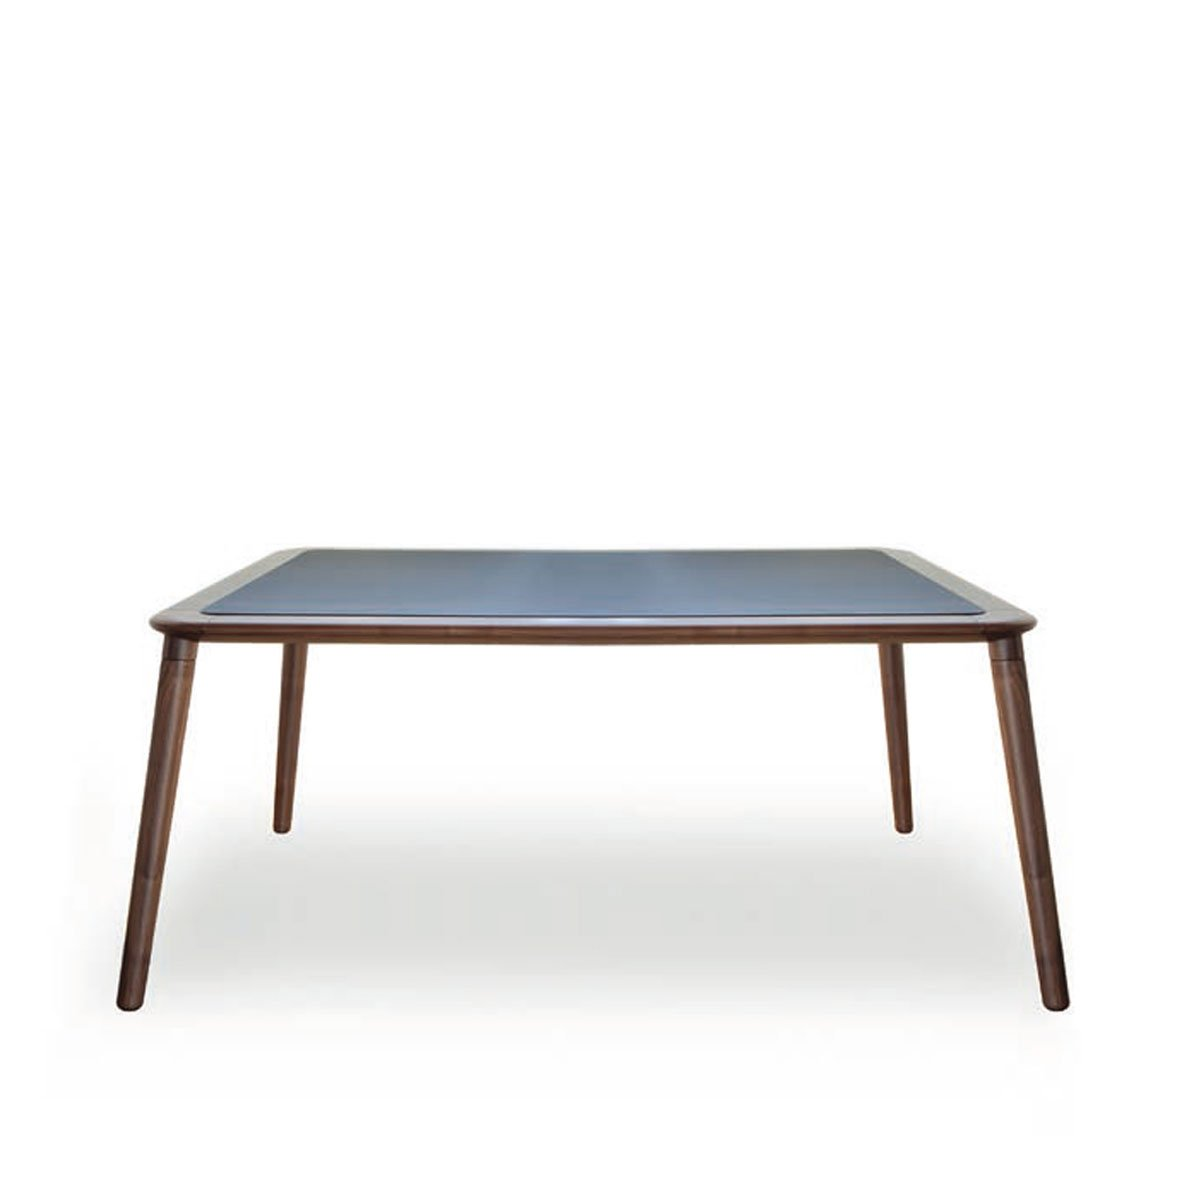 Jonathan wooden dining table with glass top klarity glass furniture Glass furniture tops